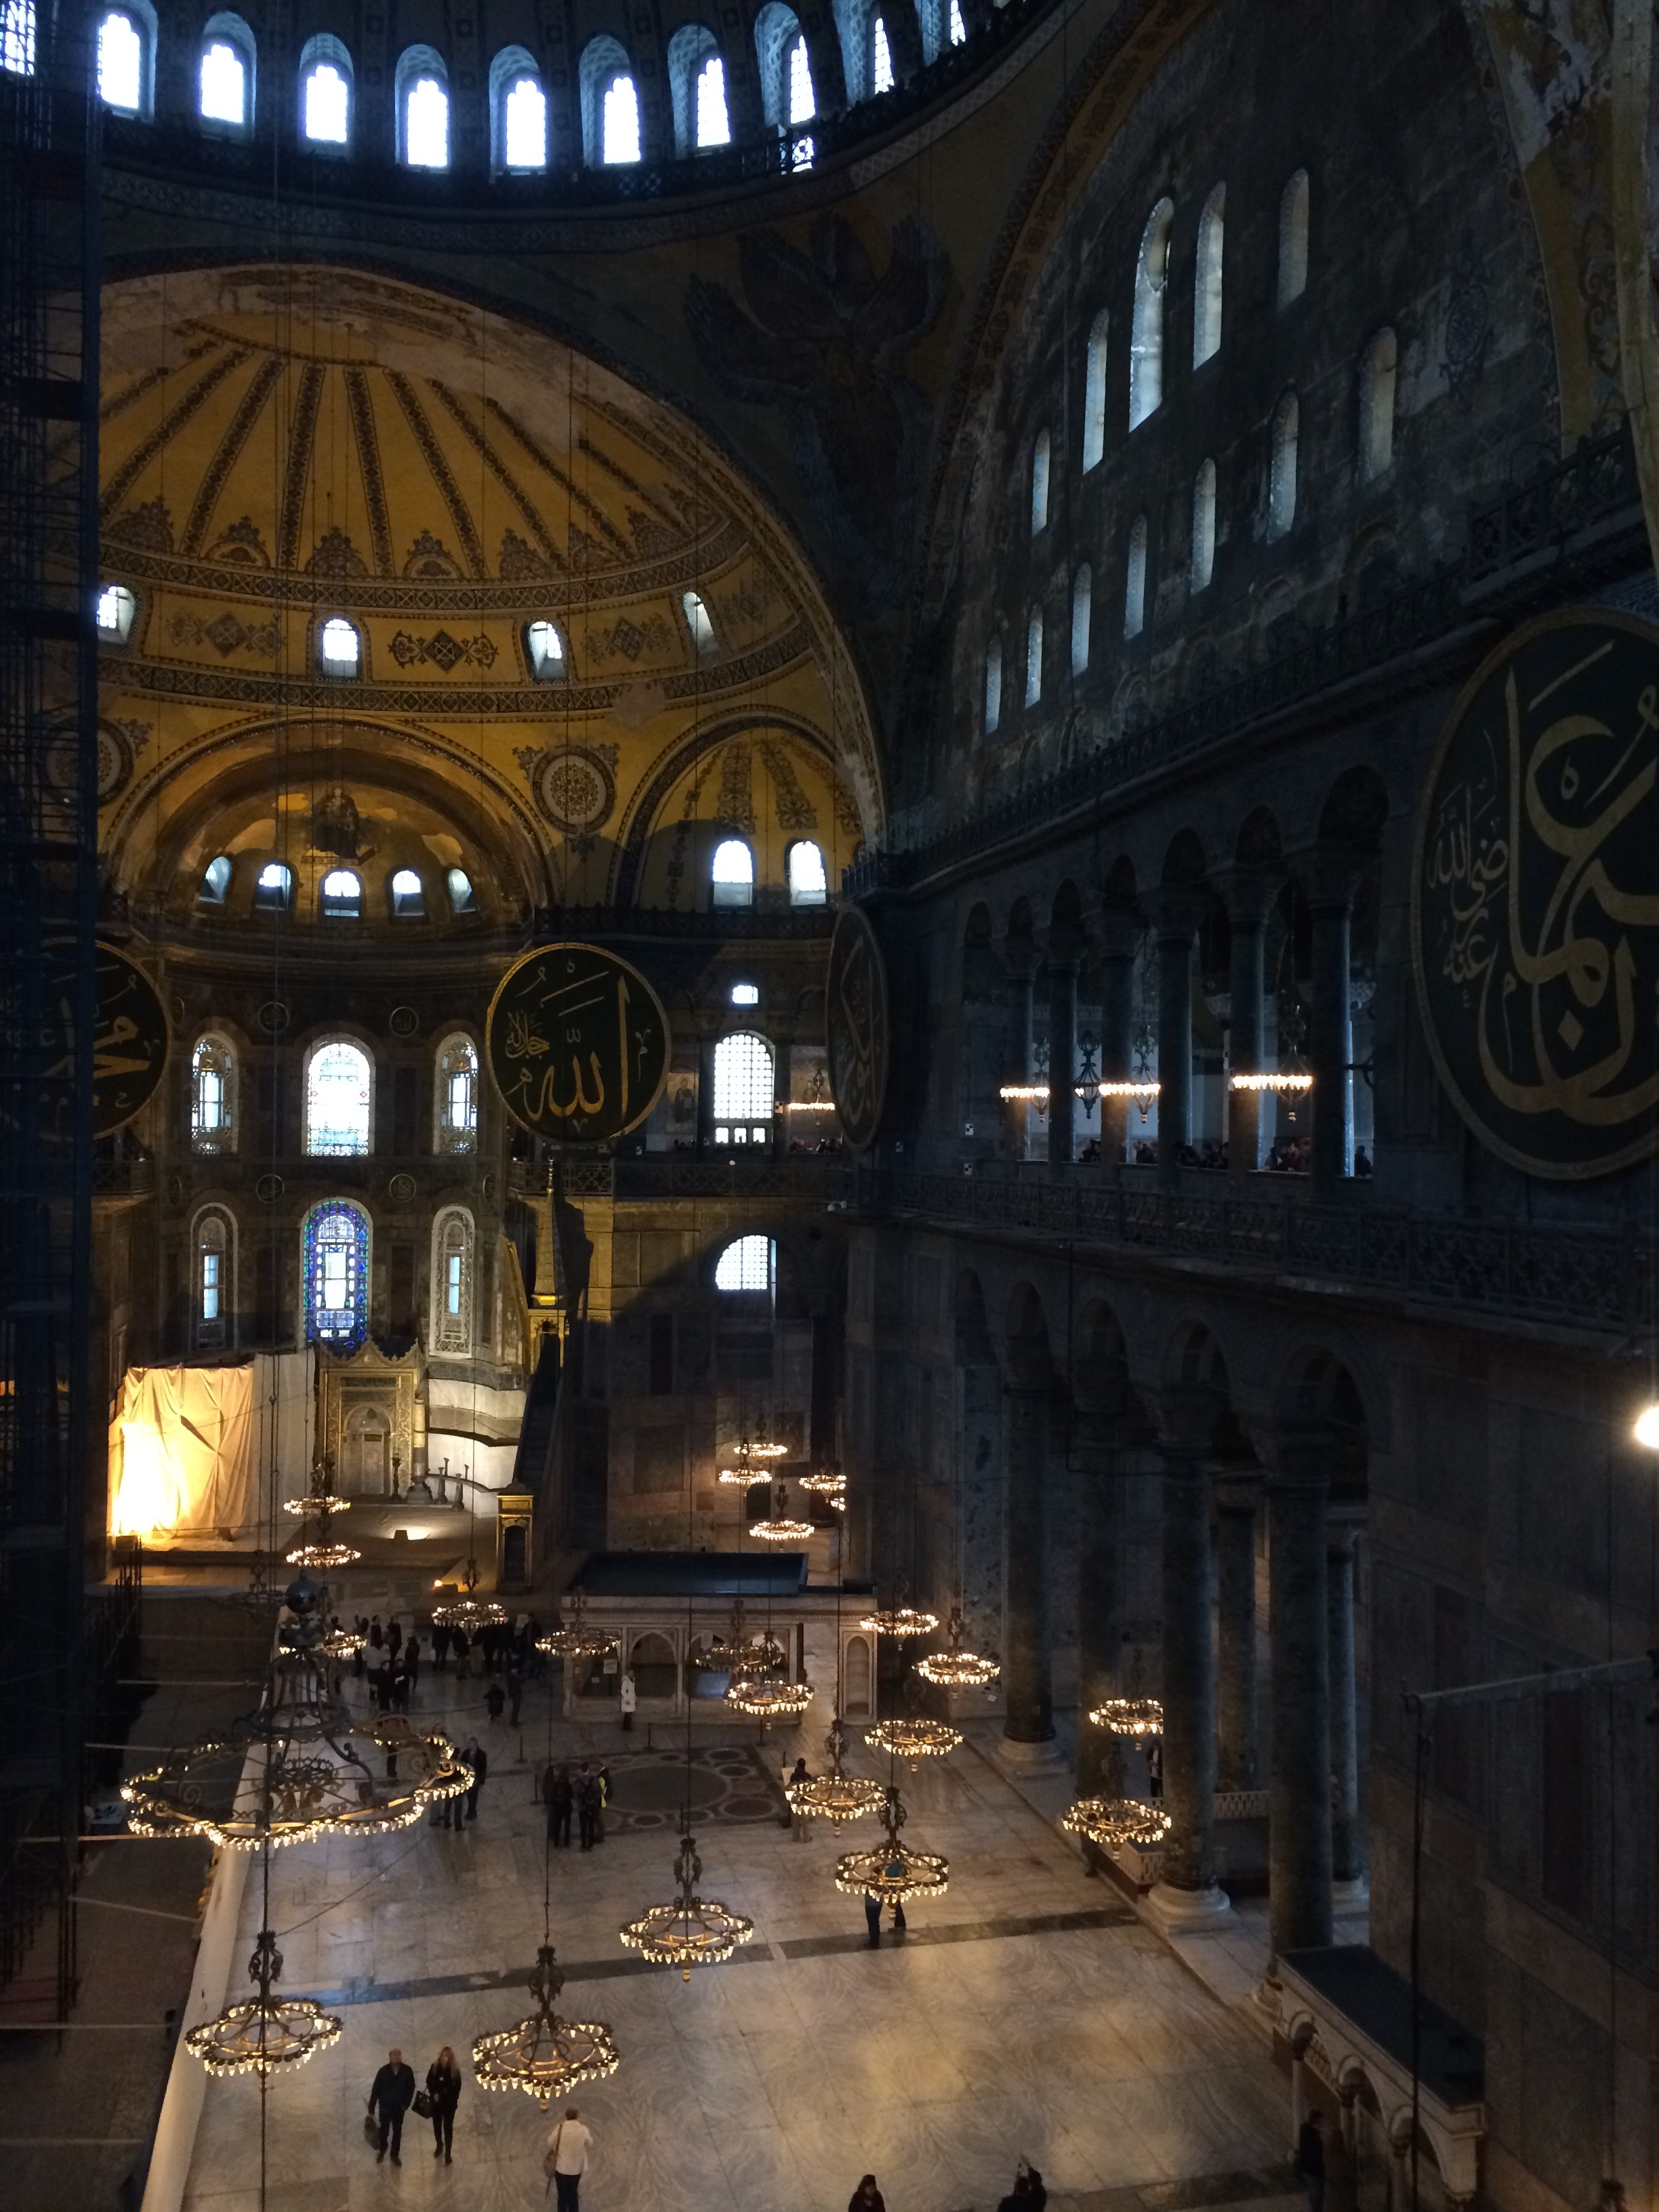 View of the Hagia Sophia interior from the second level.